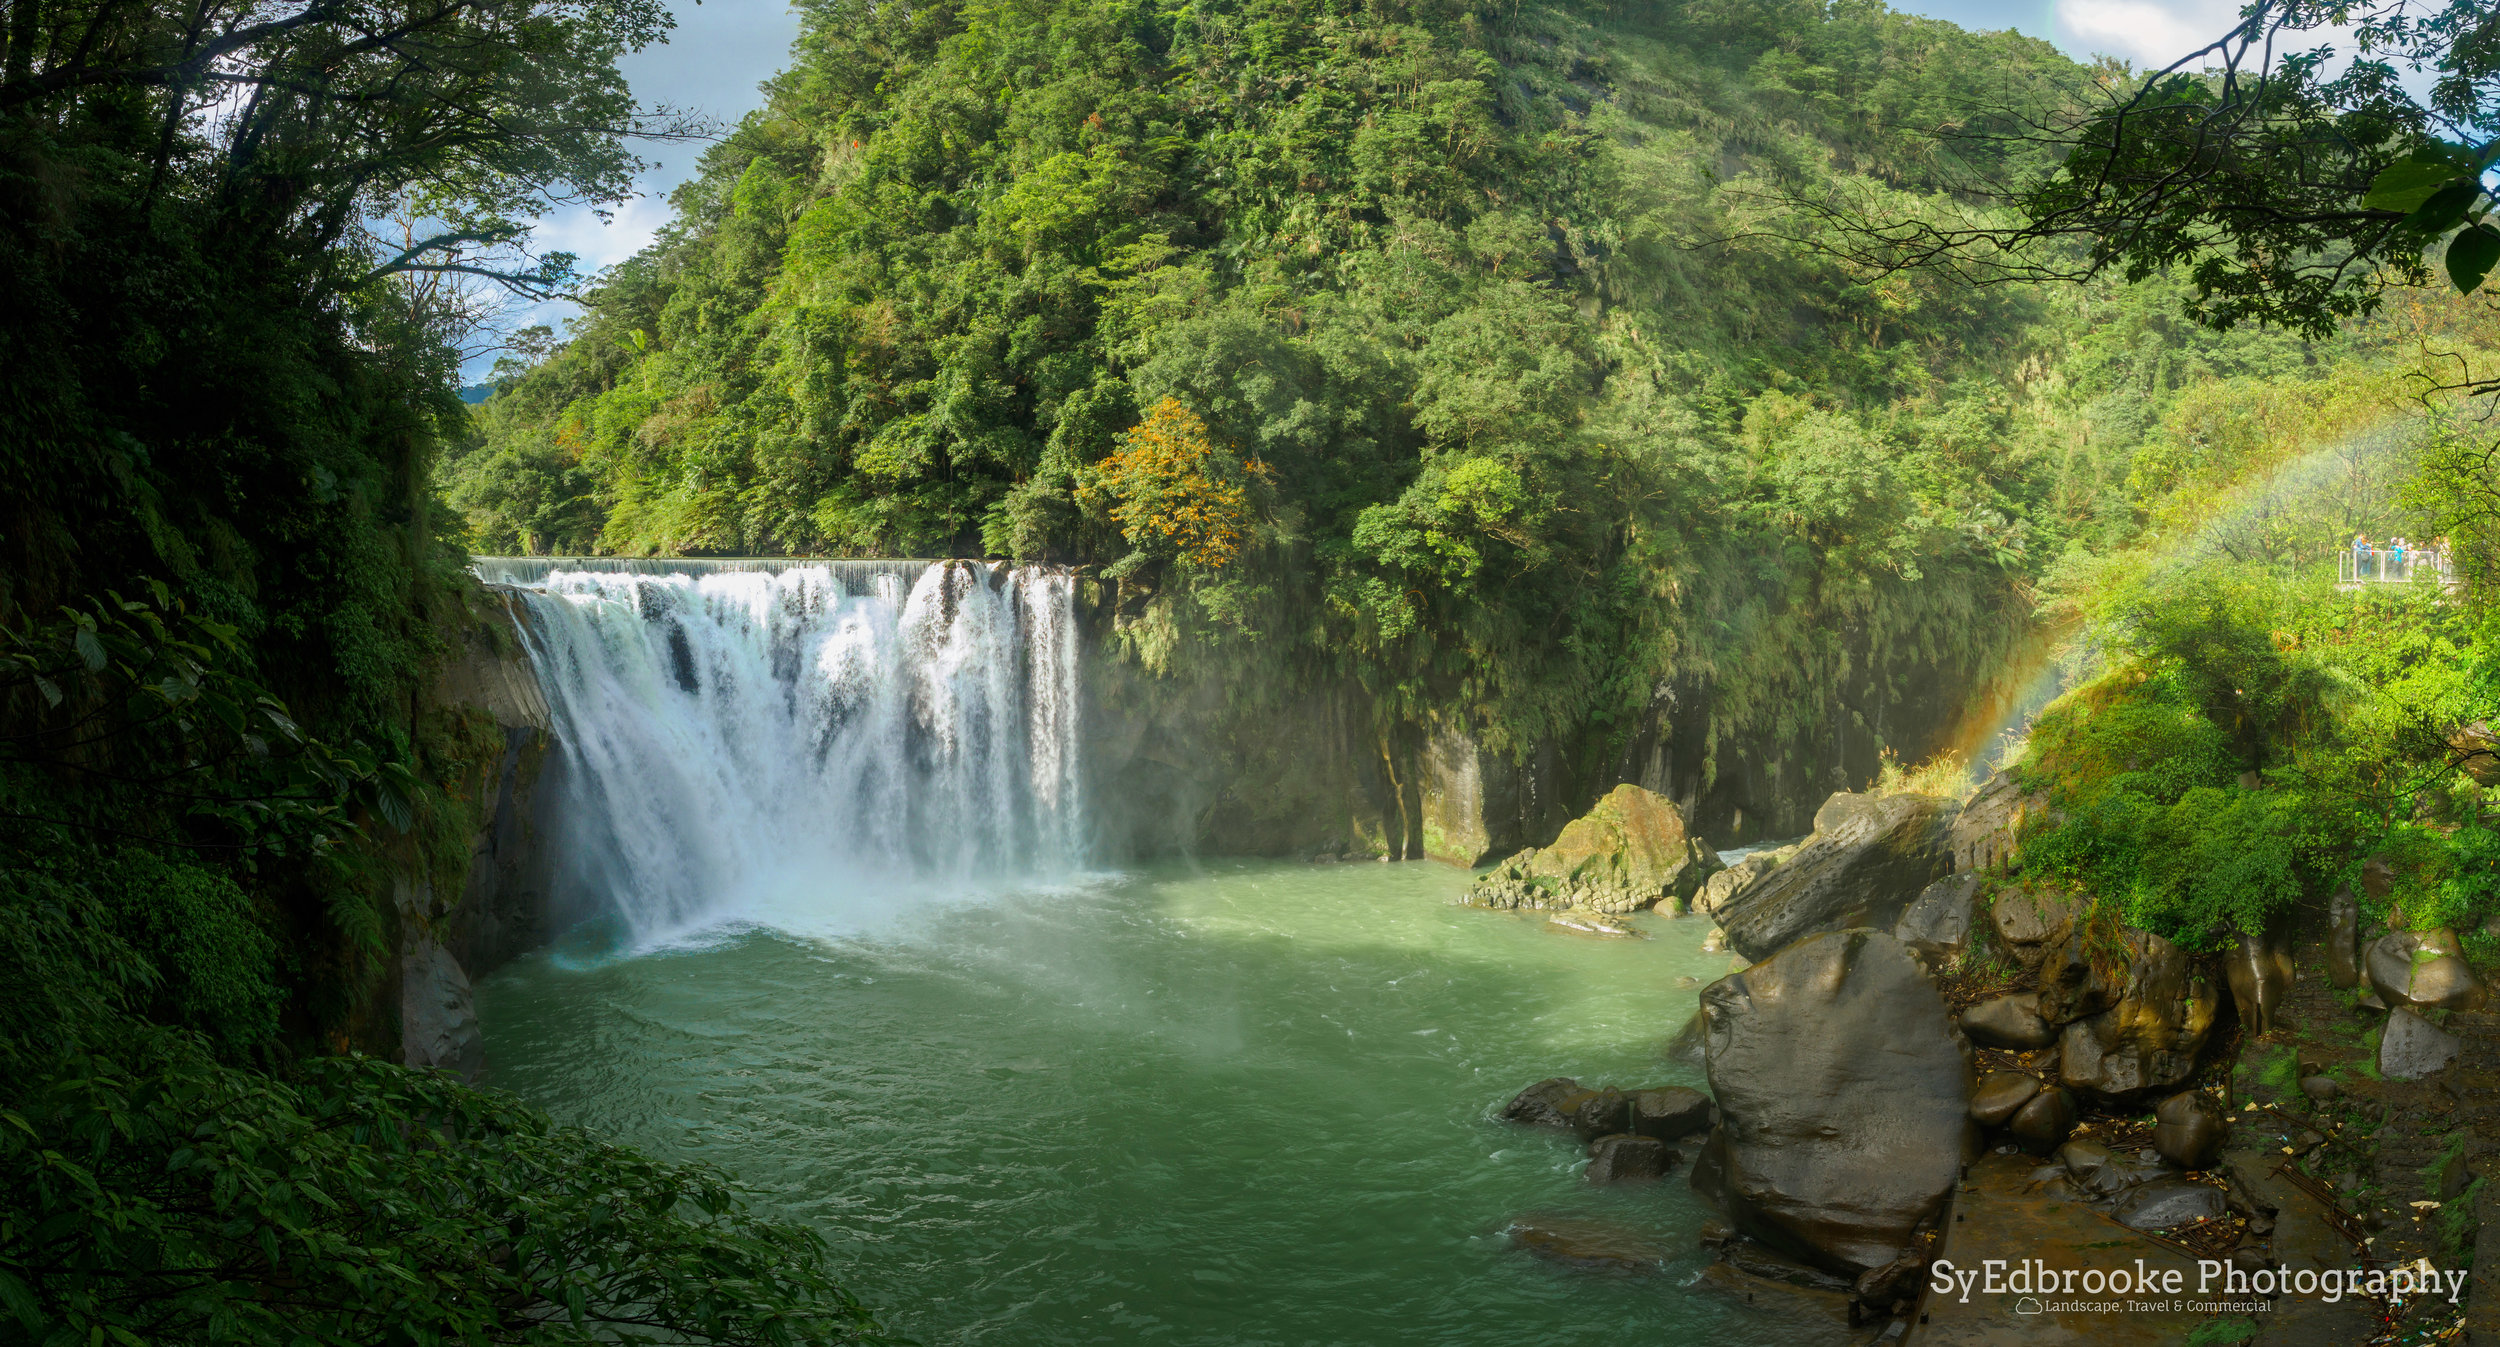 The basin viewing area of Shifen waterfall. 24mm, ISO 64, f7.1, 1/50